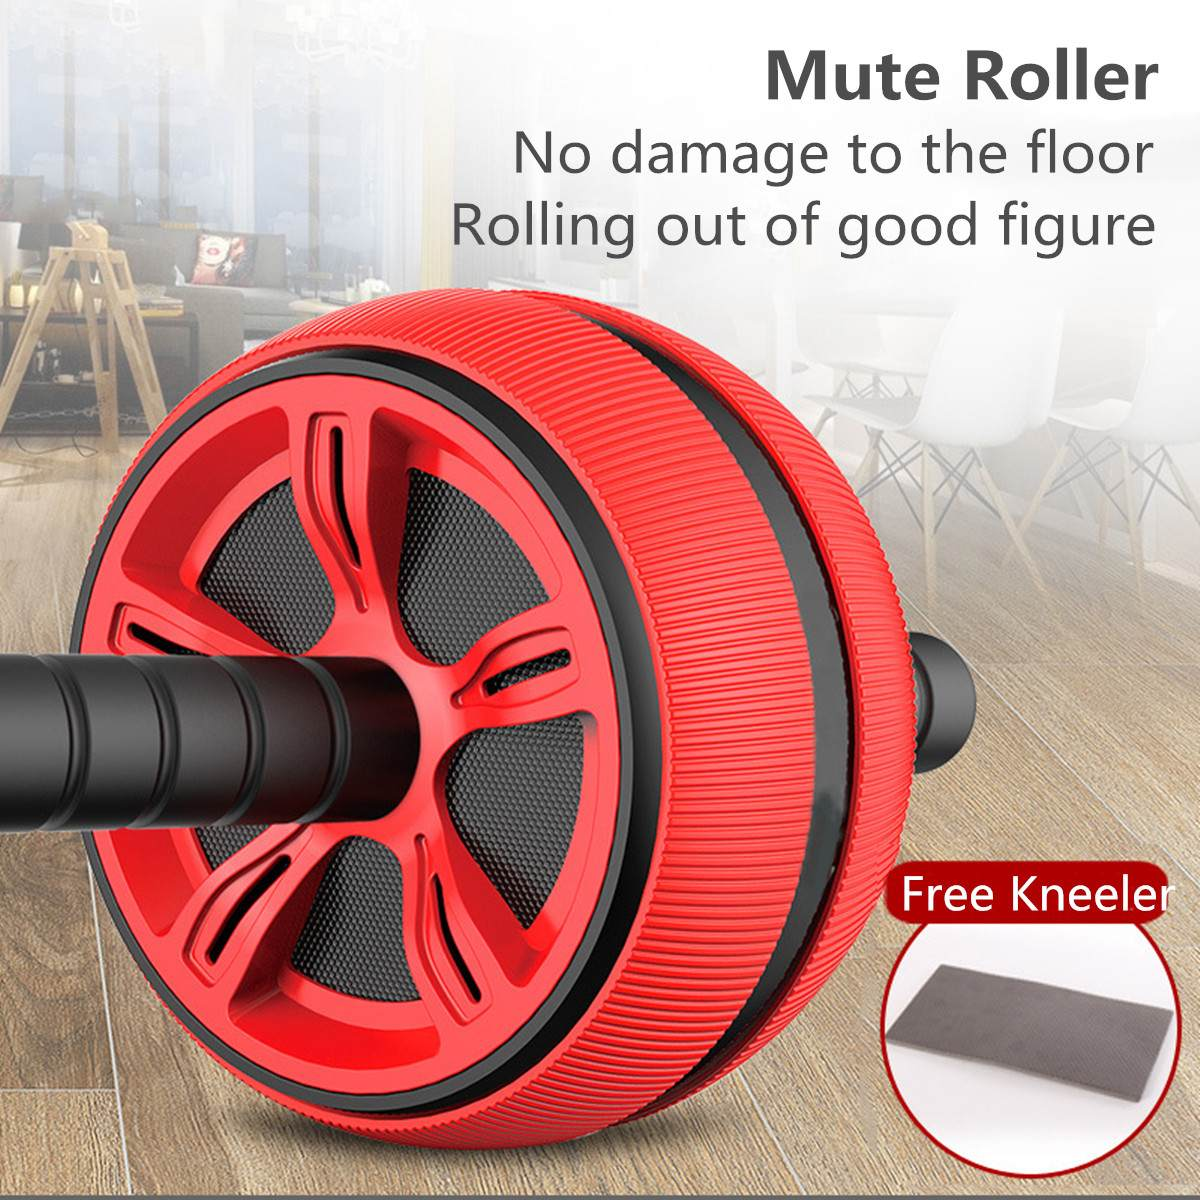 Abs Roller with Strong Bearing Capacity Ideal for burning Extra Calories from Arms Back and Belly 1